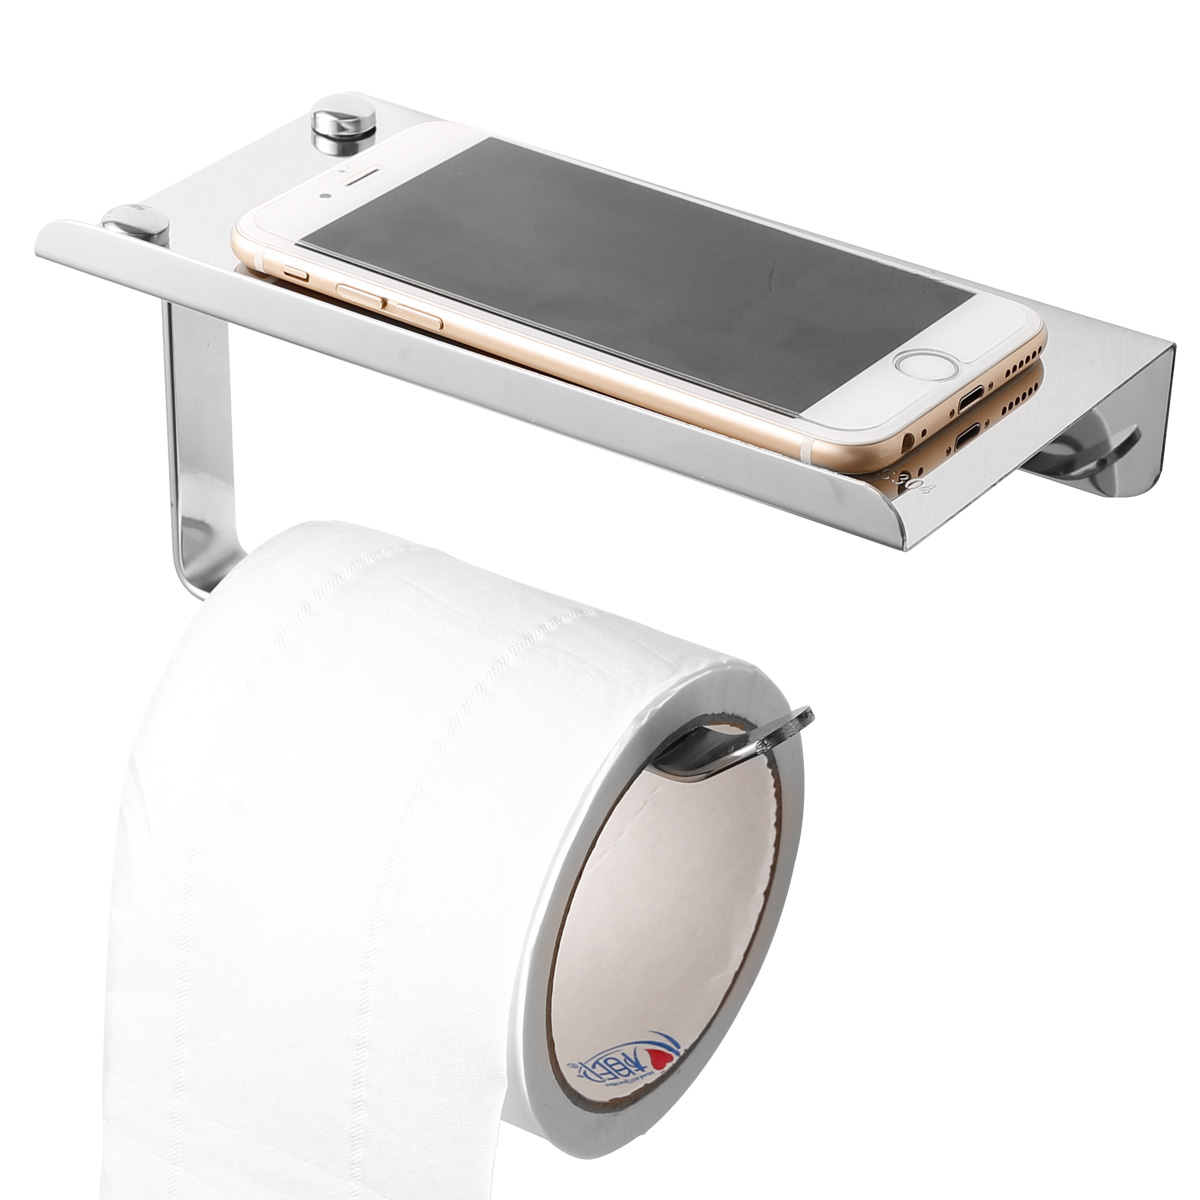 Stainless Steel Toilet Paper Stand Stainless Steel Wall Mounted Bathroom Toilet Paper Holder